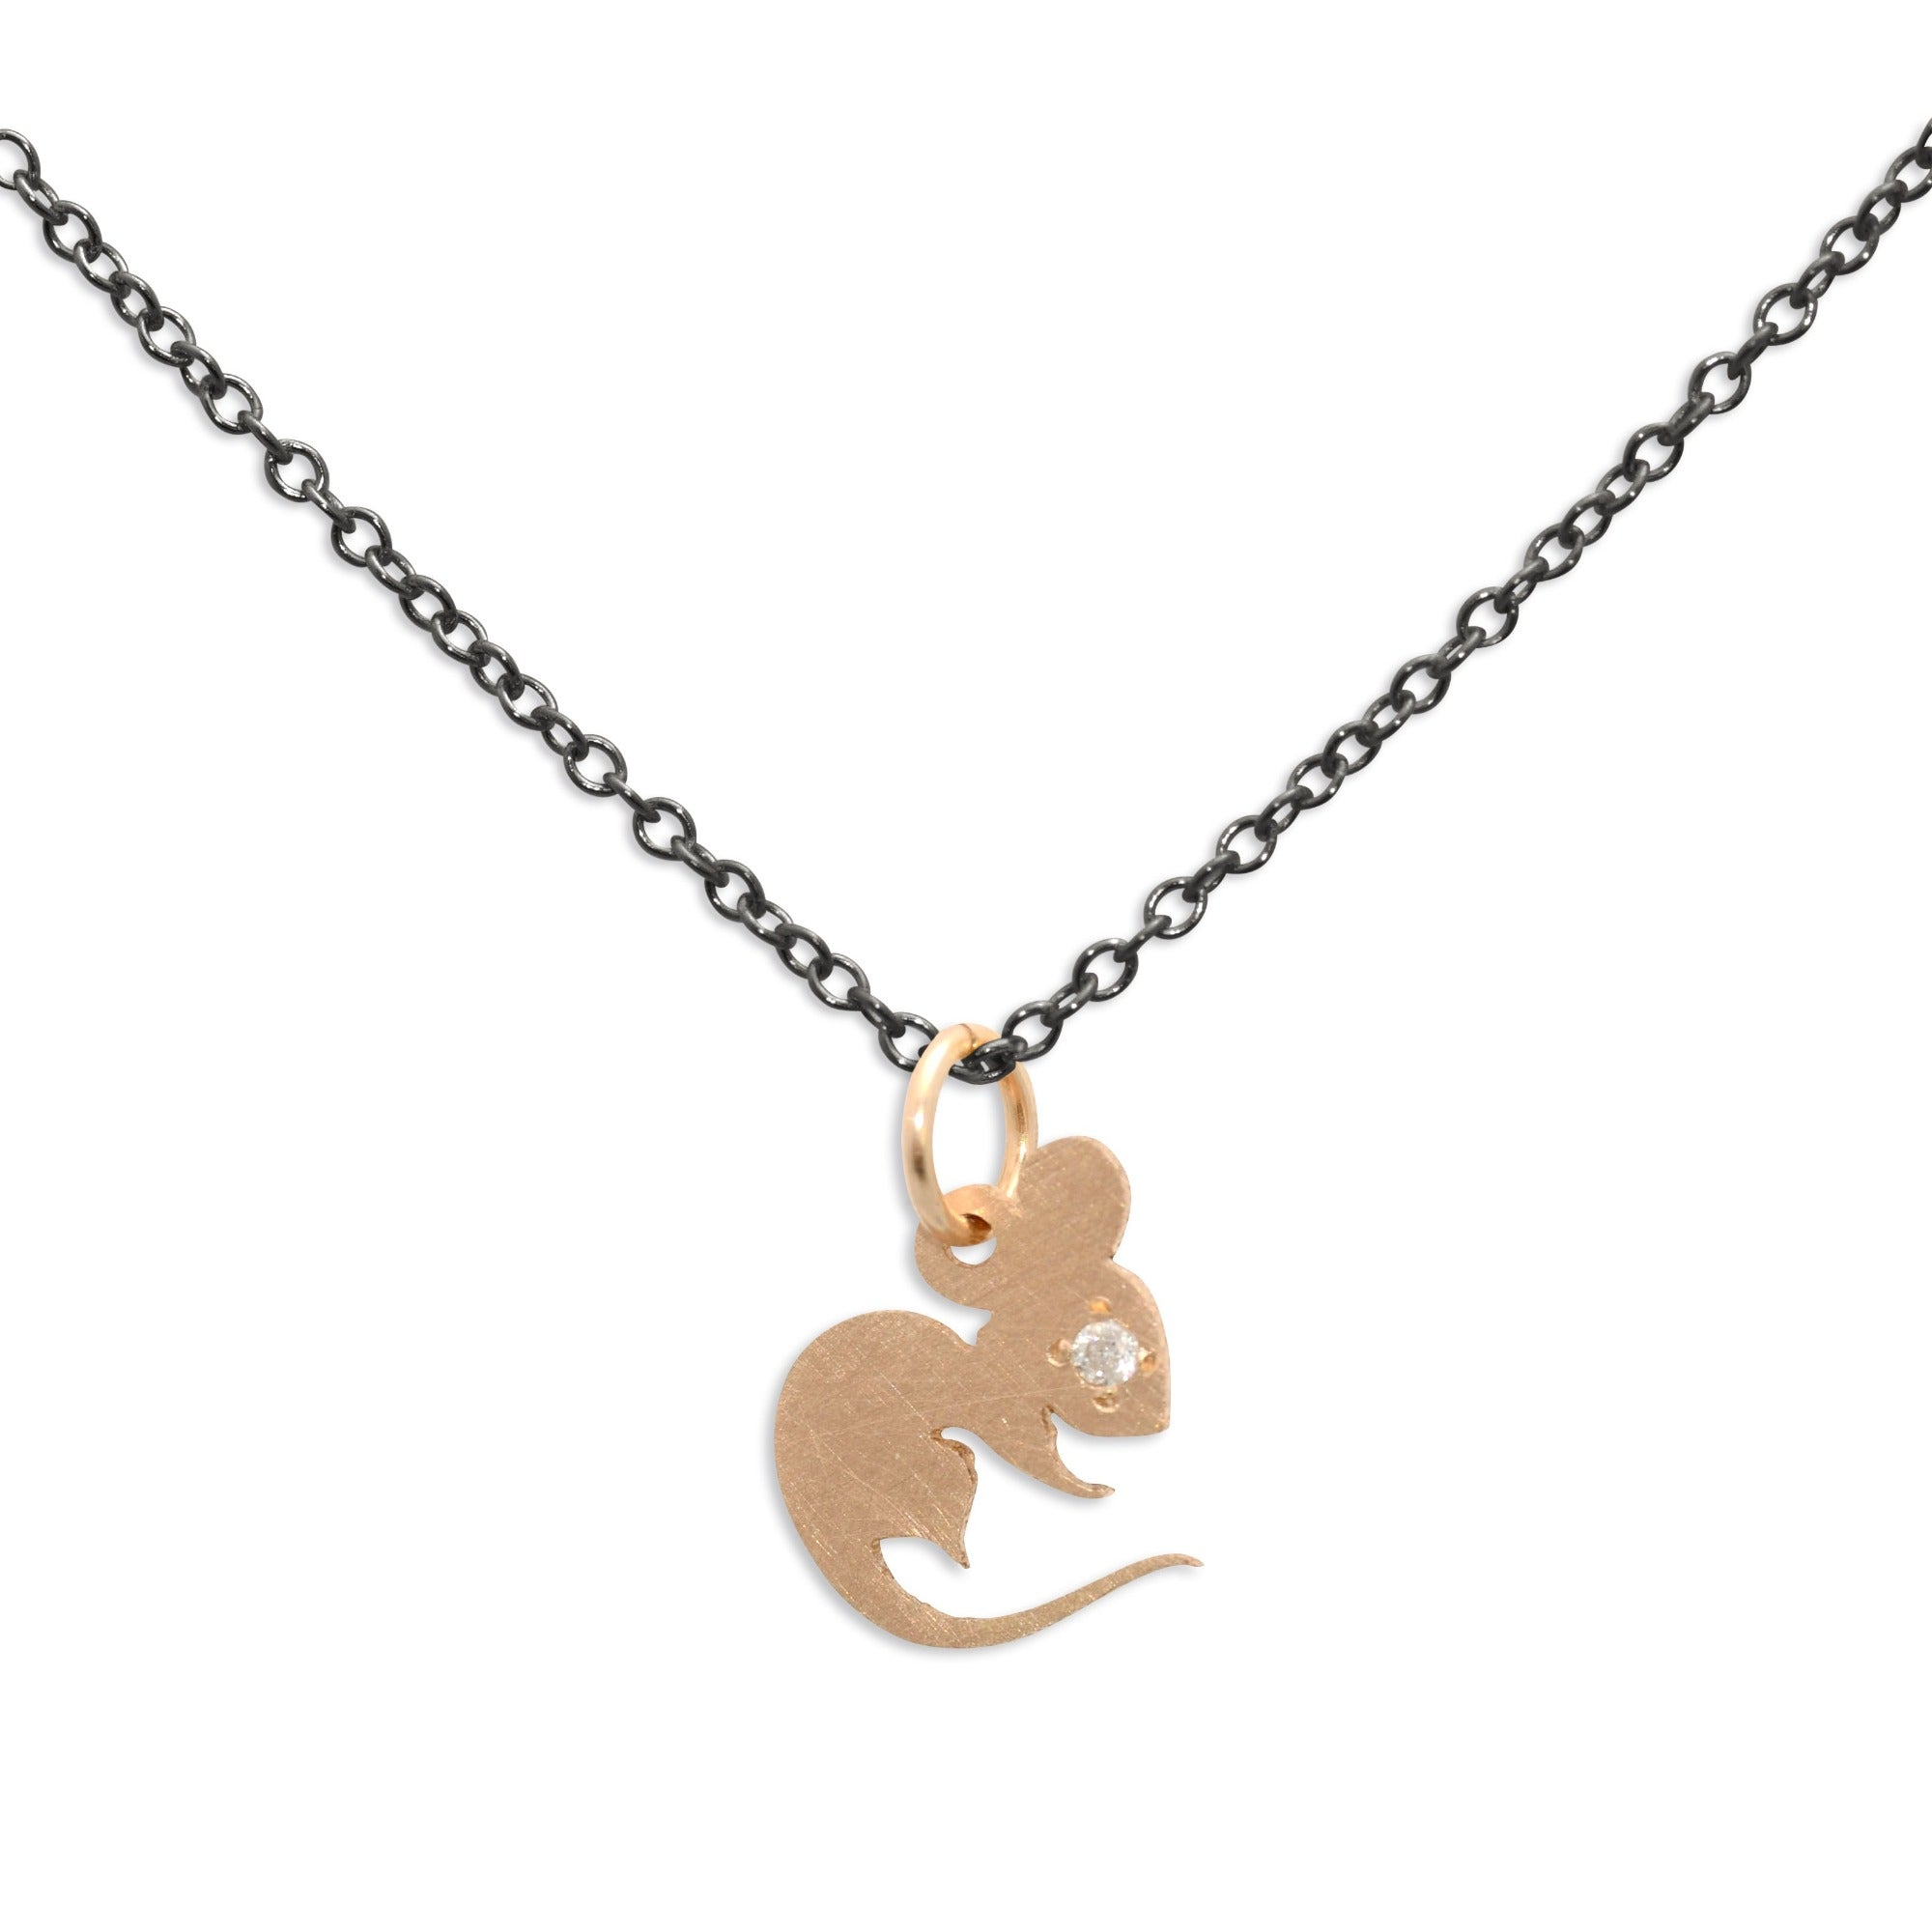 CH02 Year Of The Ox Bull Chinese Zodiac Animal Birthday Charm Pendant Genuine 925 Sterling Silver or Genuine 750 18k or 375 9k Yellow Gold